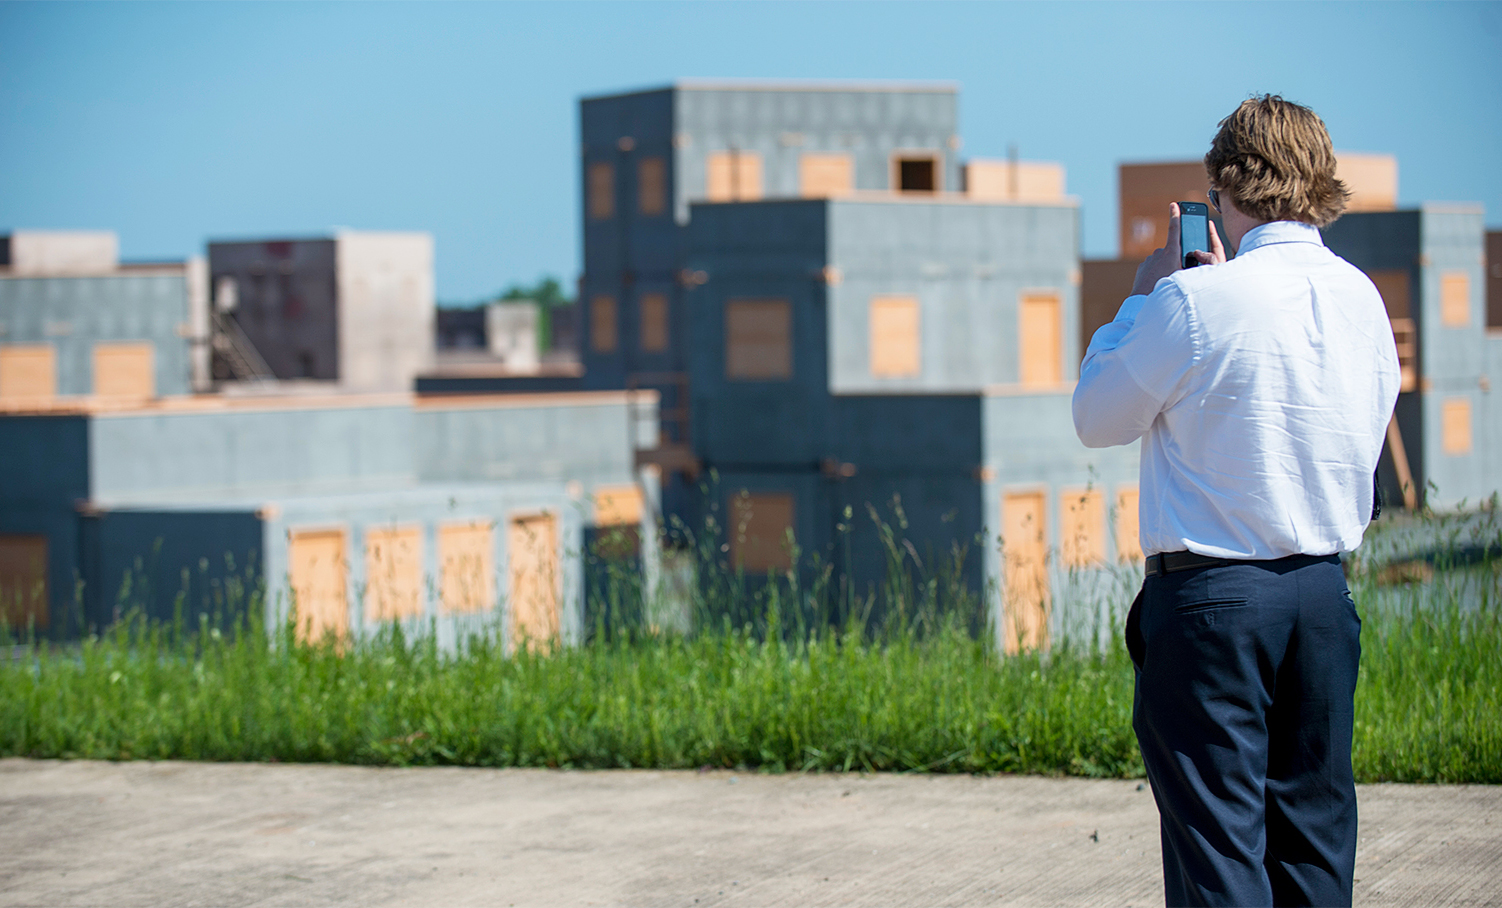 Man taking photo at the Marine Corps Base in Quantico.